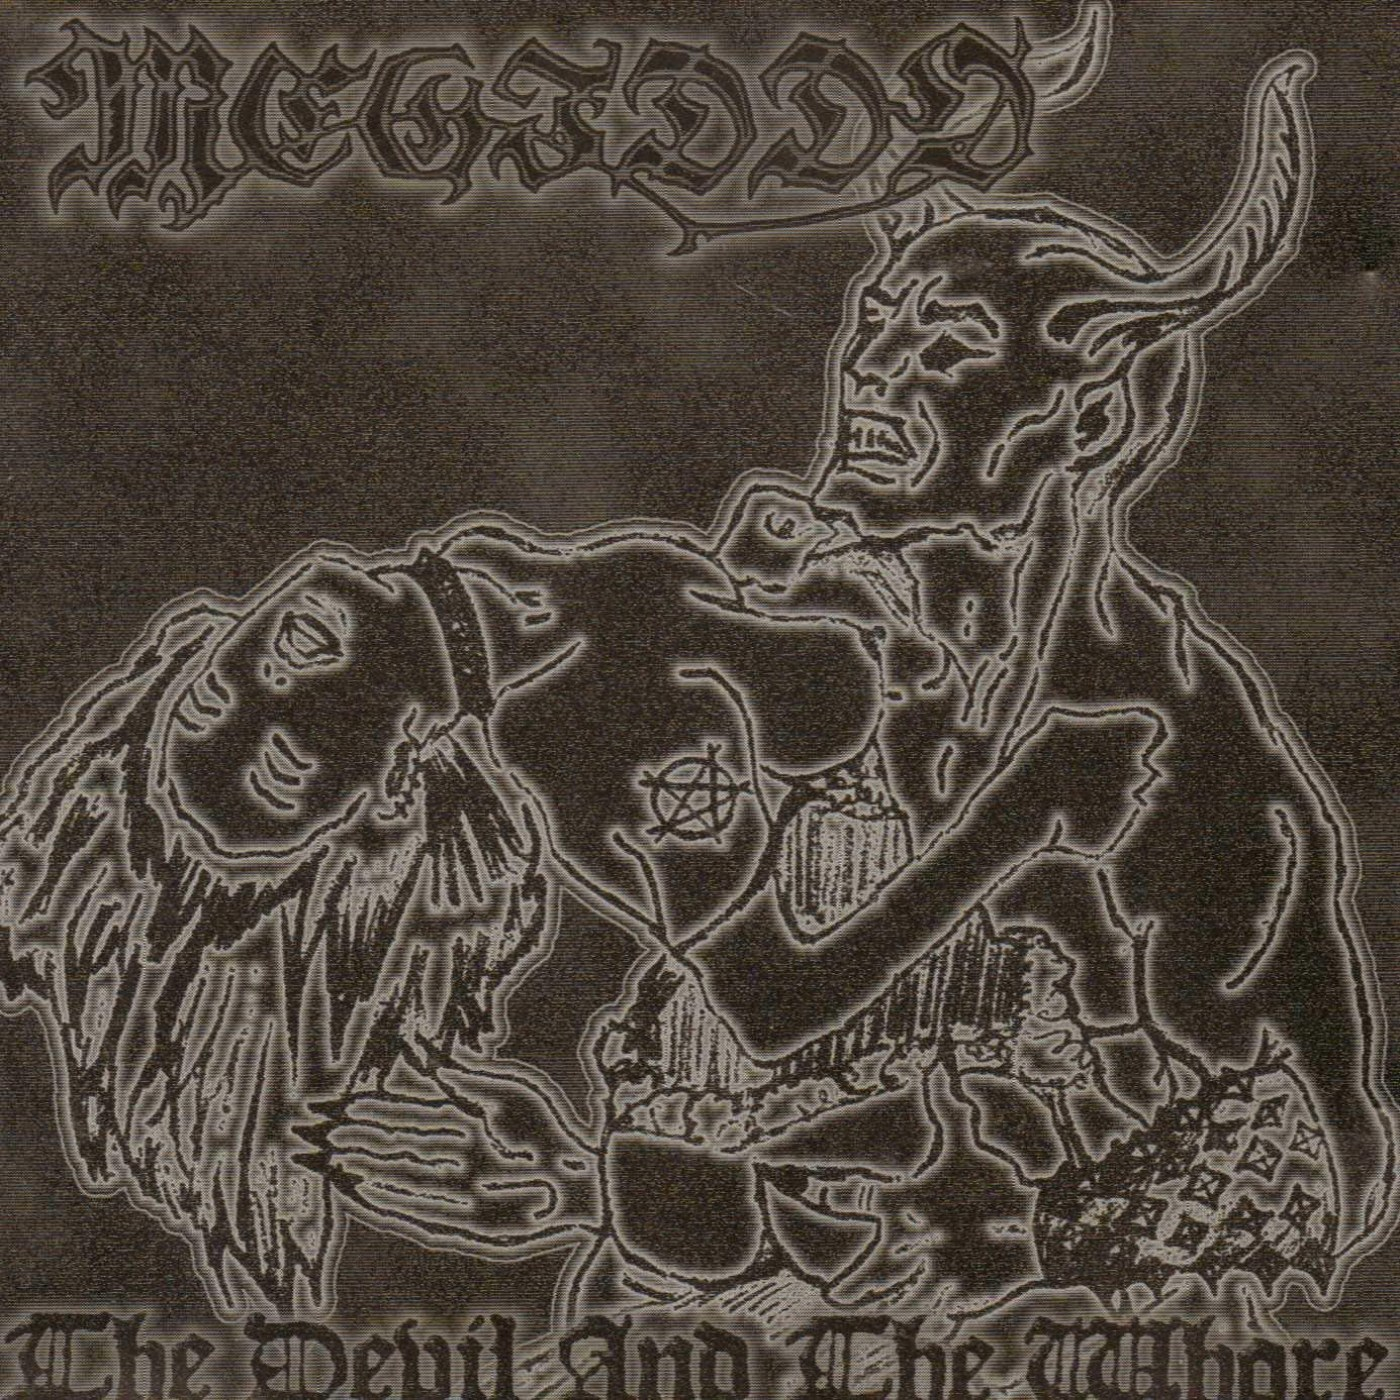 Megiddo (CAN) - The Devil and the Whore